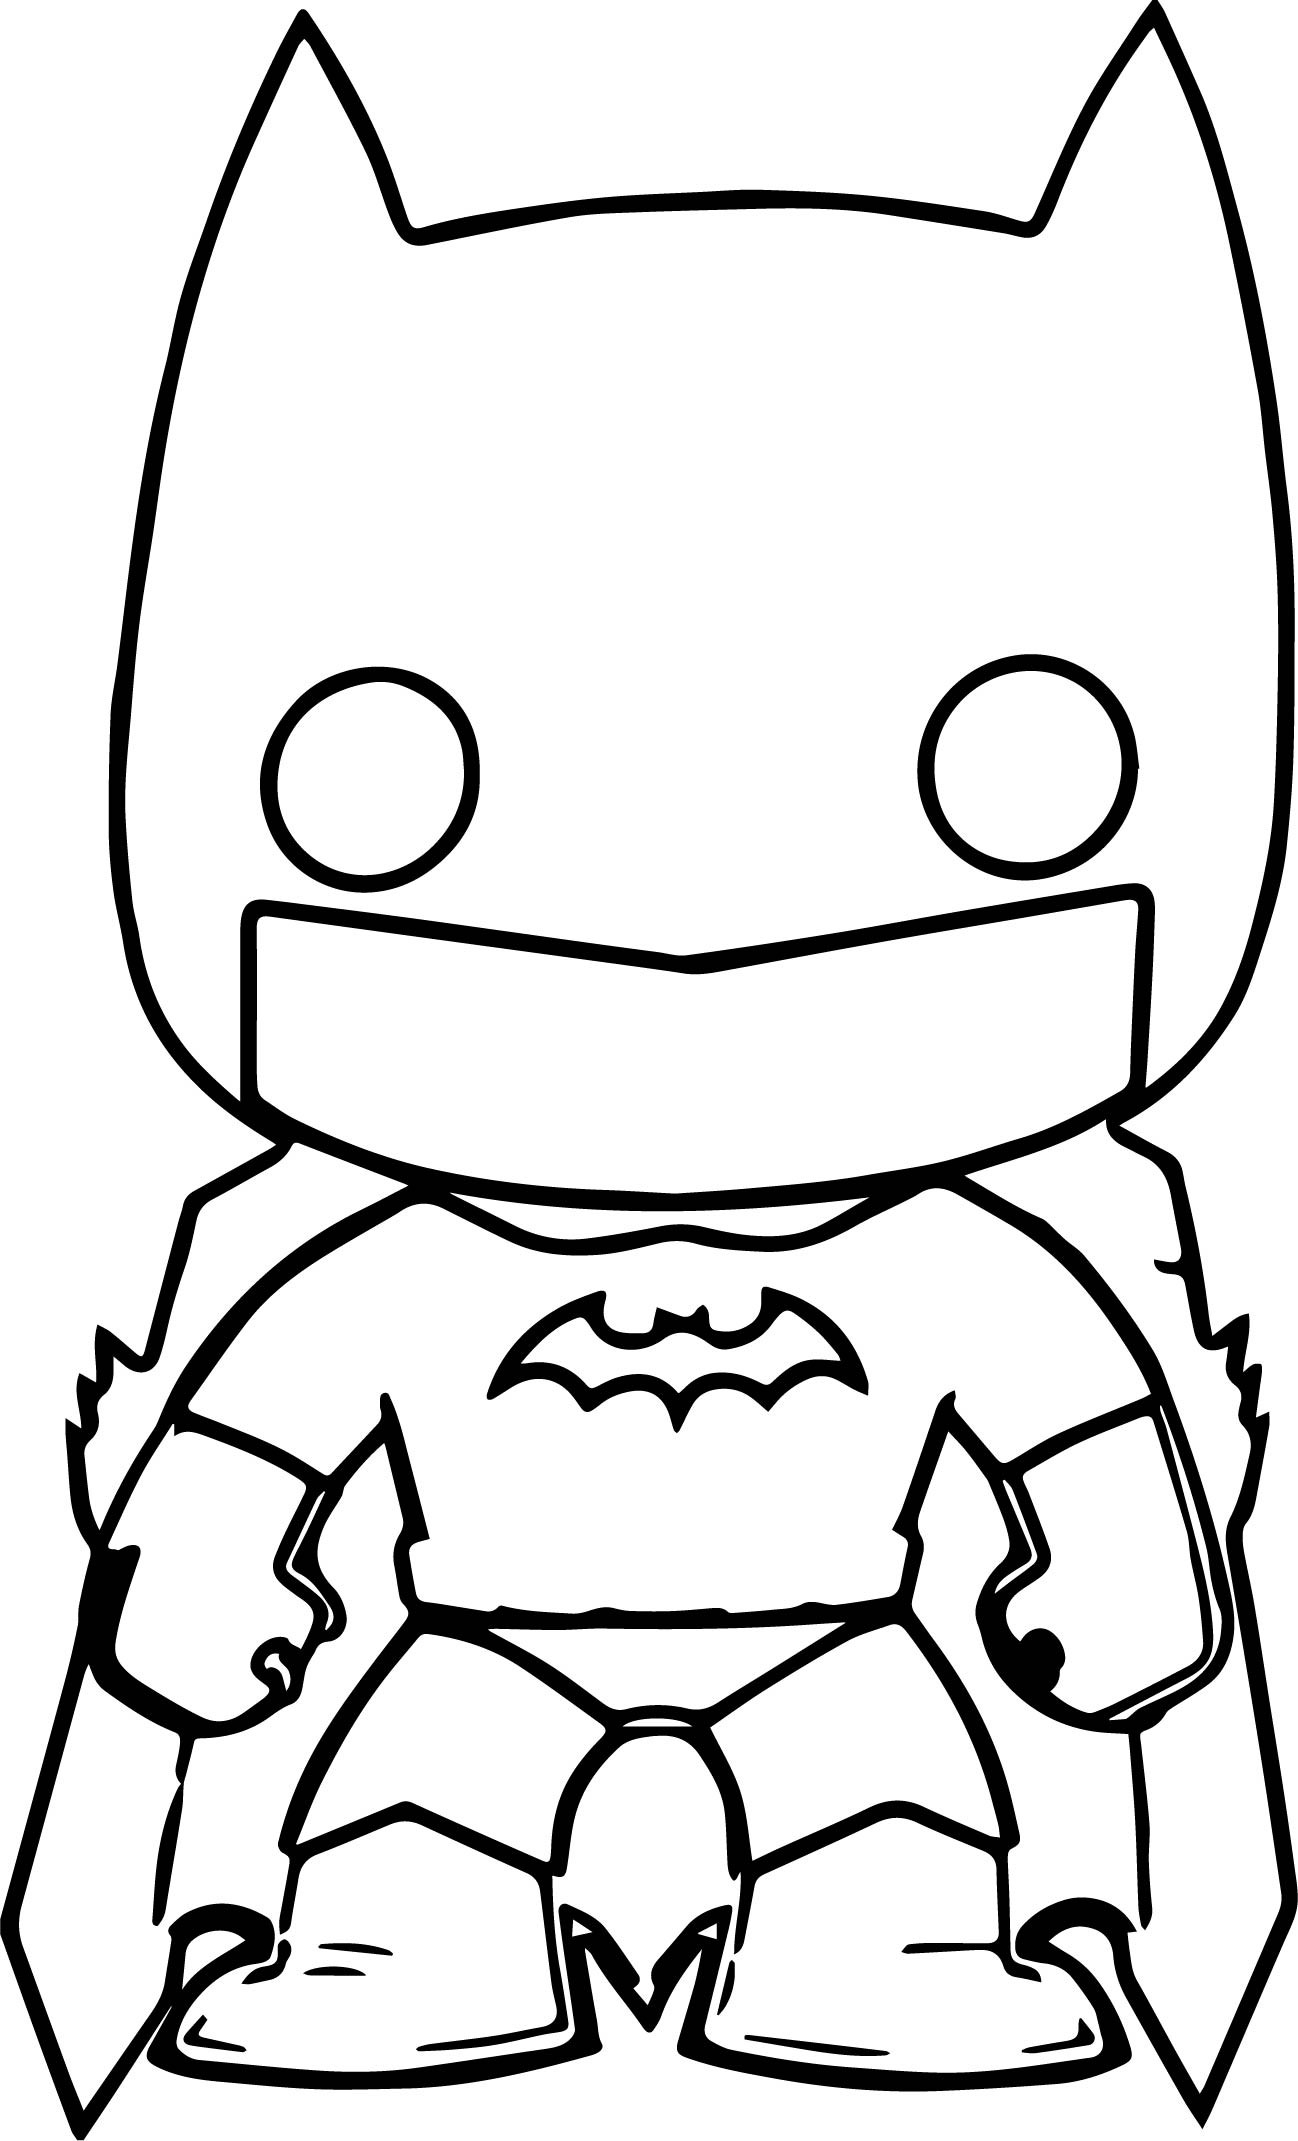 coloring batman printable coloring batman printable coloring printable batman